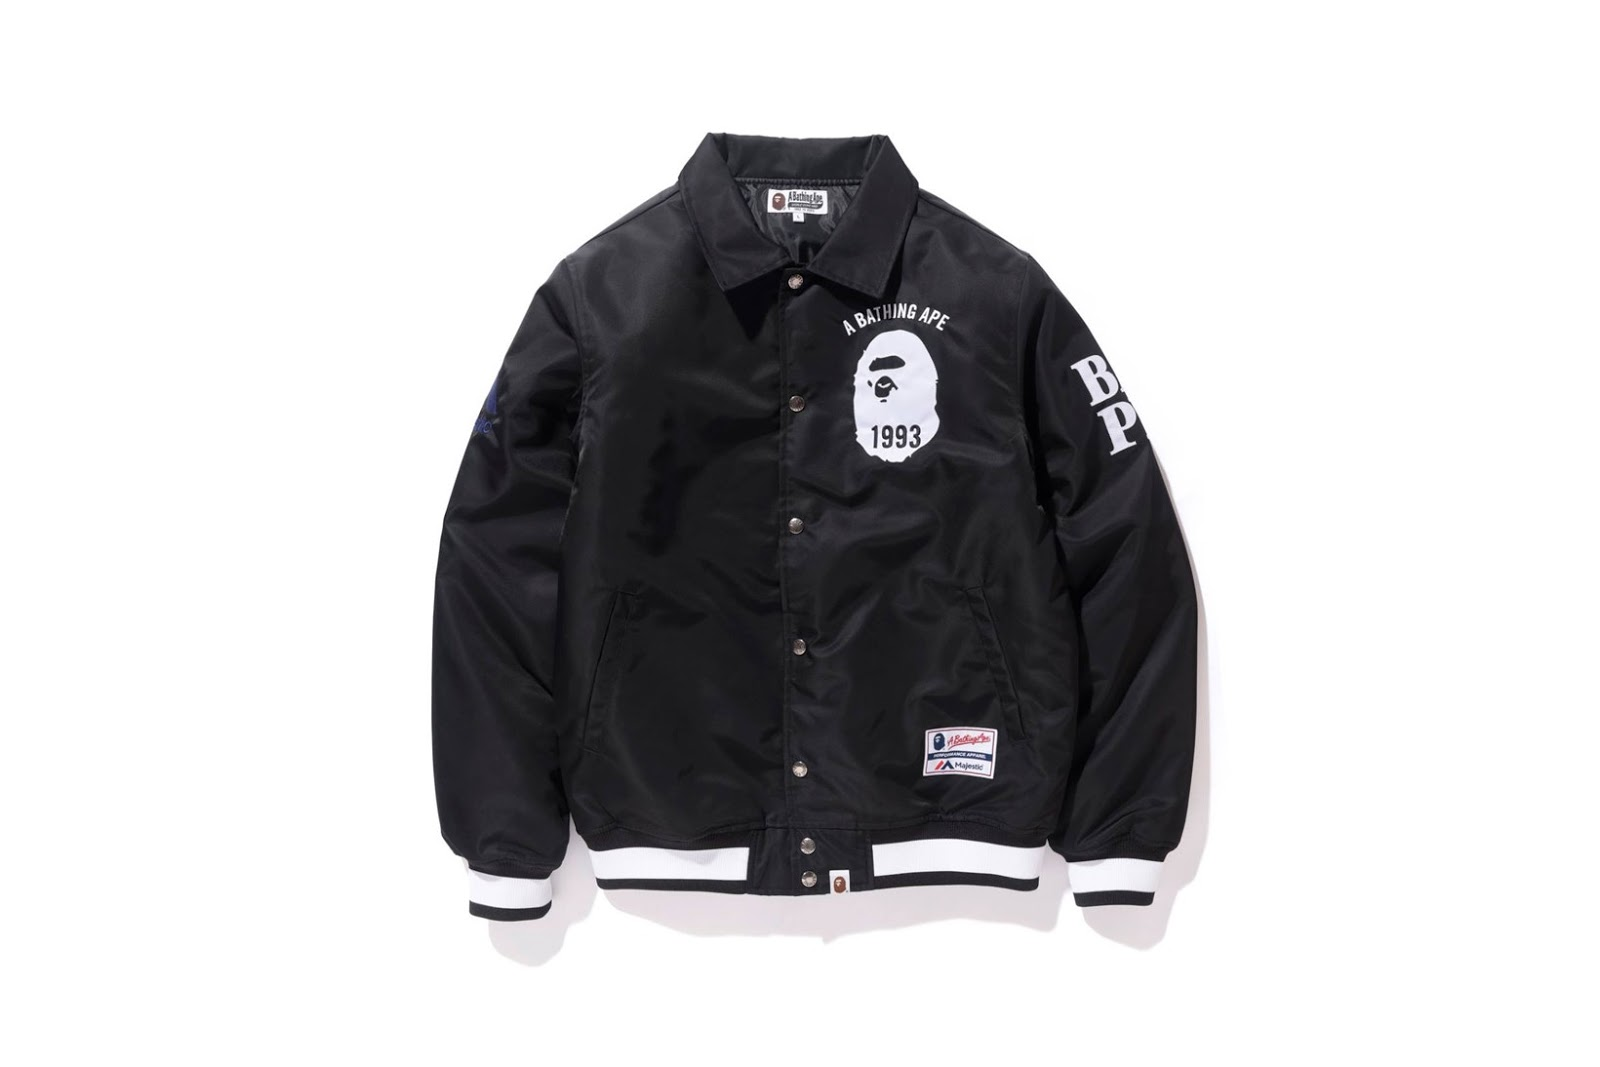 68113ebf2d88 Check out the capsule after the jump and expect an official launch at  BAPE s official website and select retailers this January 13th.